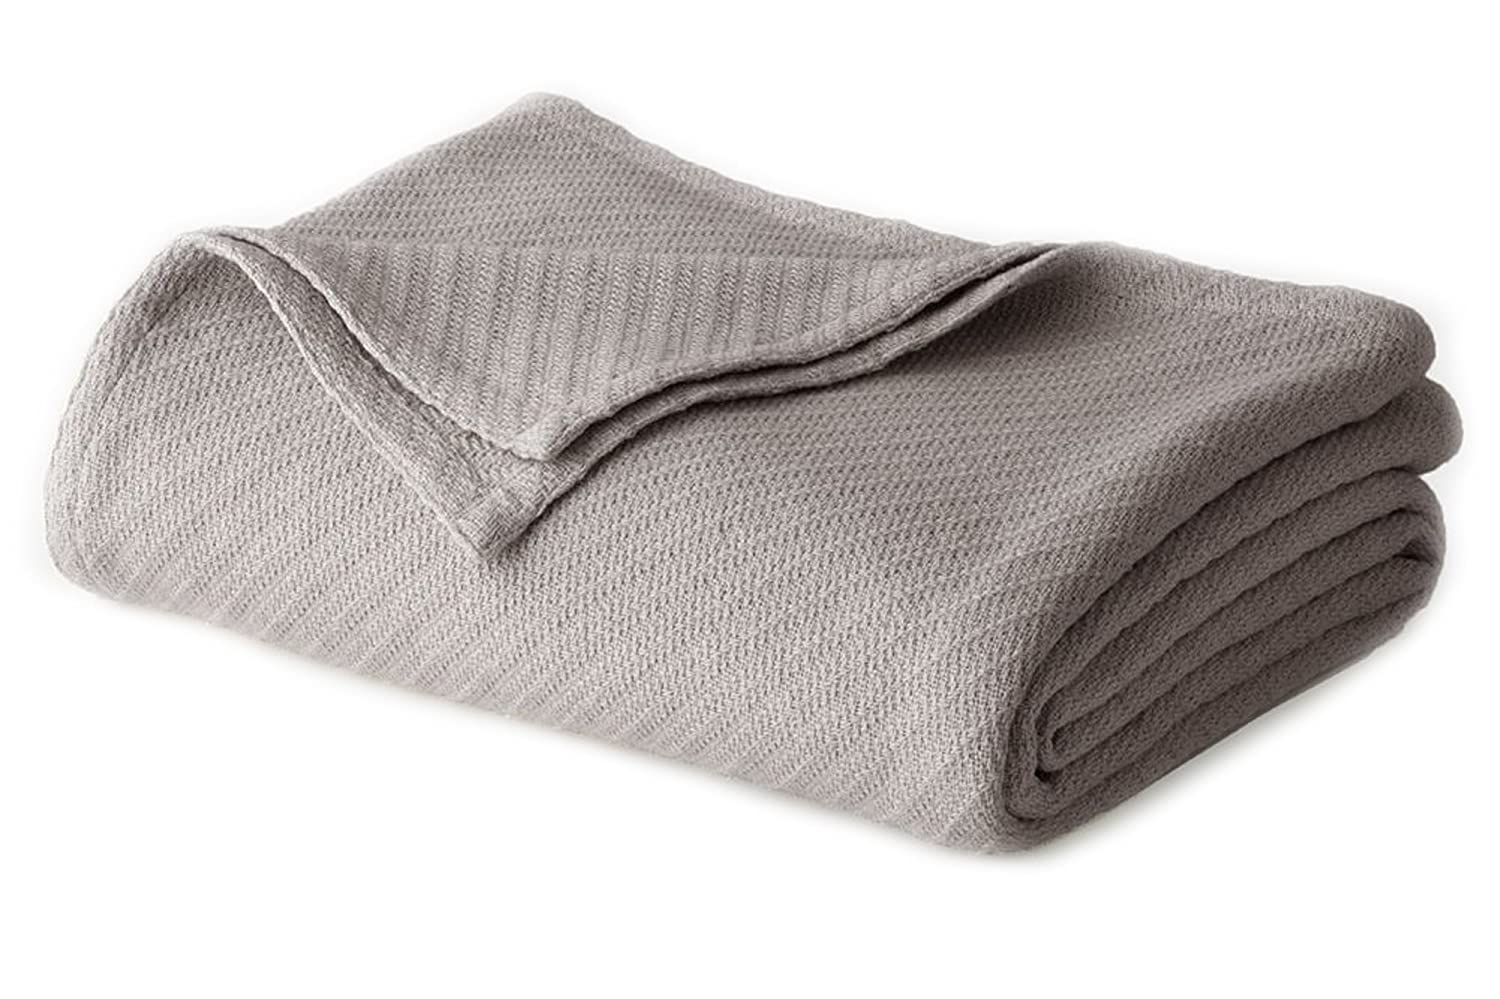 Cotton Craft - 100% Soft Premium Cotton Thermal Blanket - Full/Queen Grey - Snuggle in these Super Soft Cozy Cotton Blankets - Perfect for Layering any Bed - Provides Comfort and Warmth for years Orient Originals Inc.